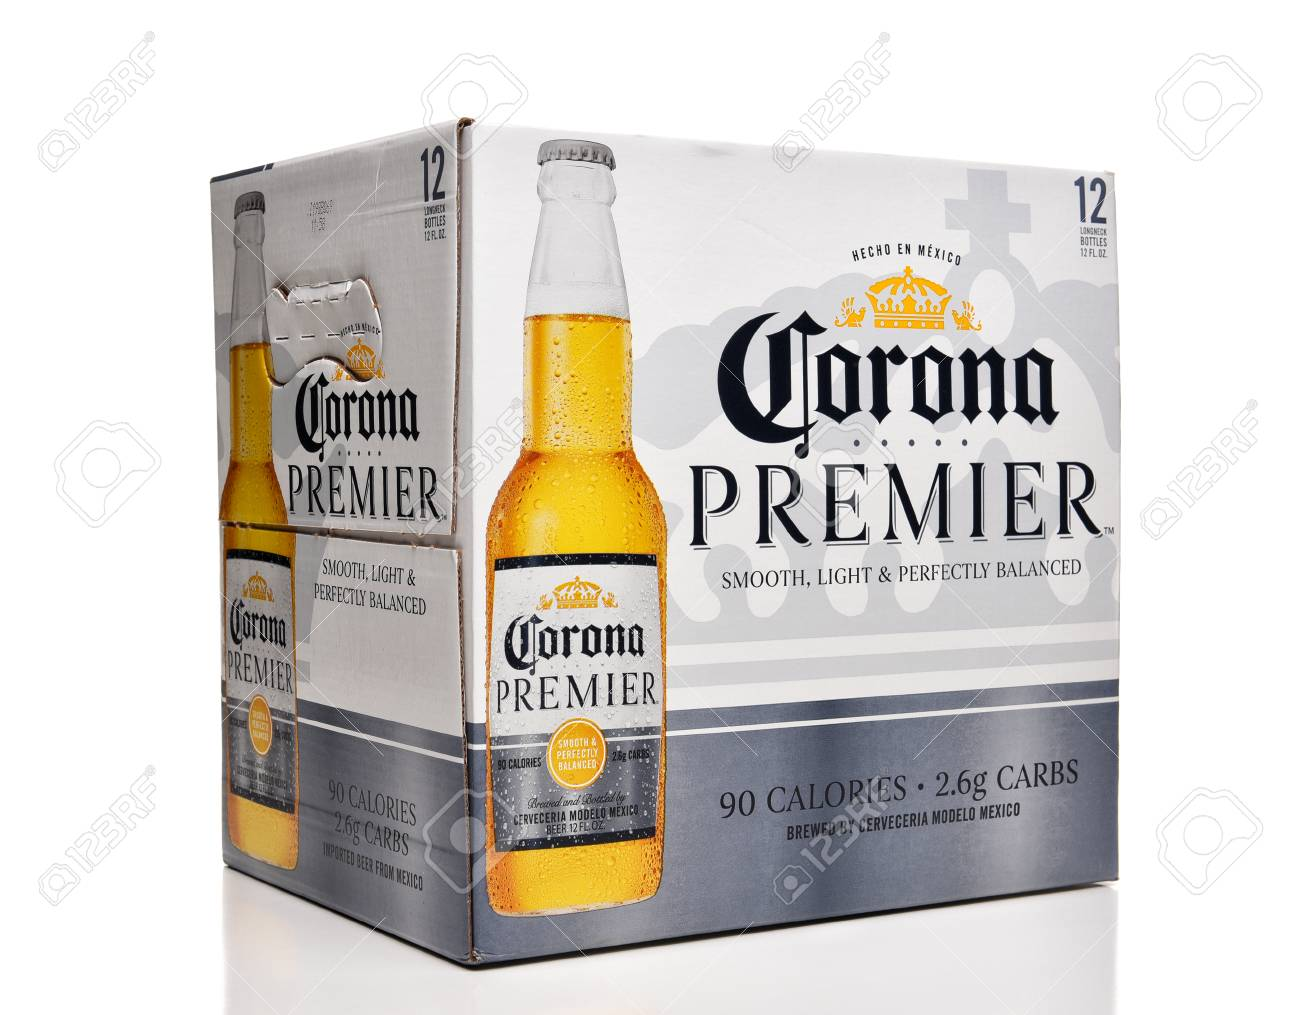 Irvine Calfornia February 17 2019 Corona Premier 12 Pack Stock Photo Picture And Royalty Free Image Image 117655440